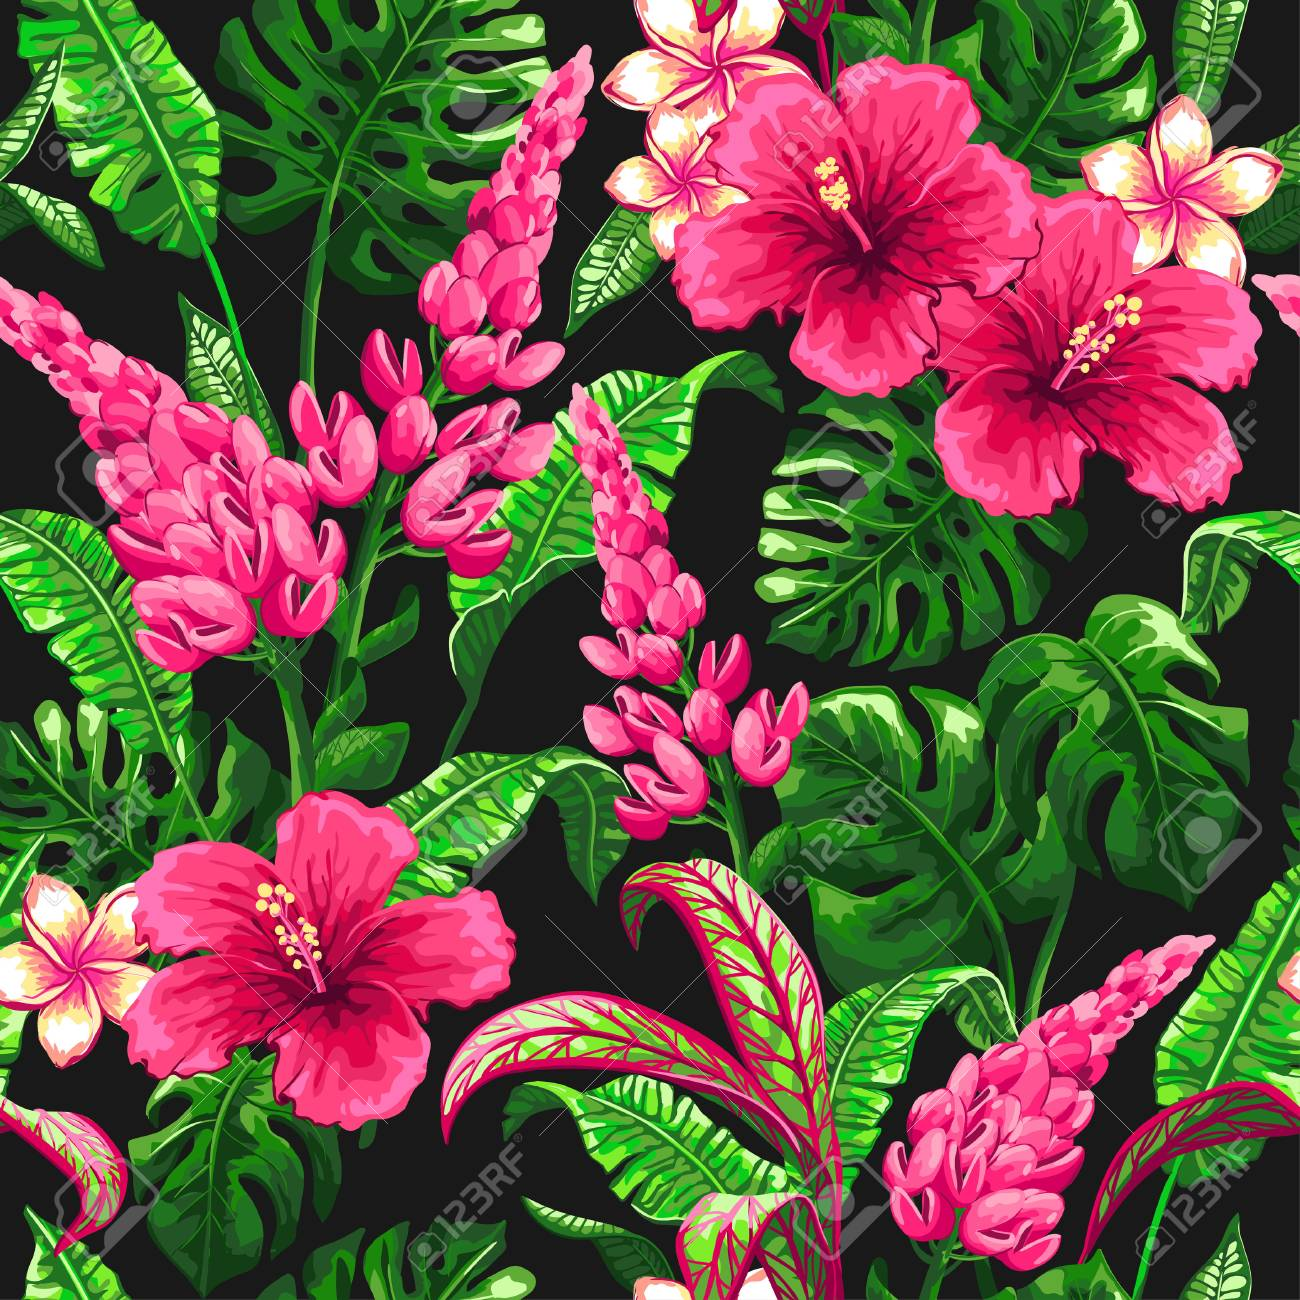 Tropical pattern with palm leaves. - 83872867